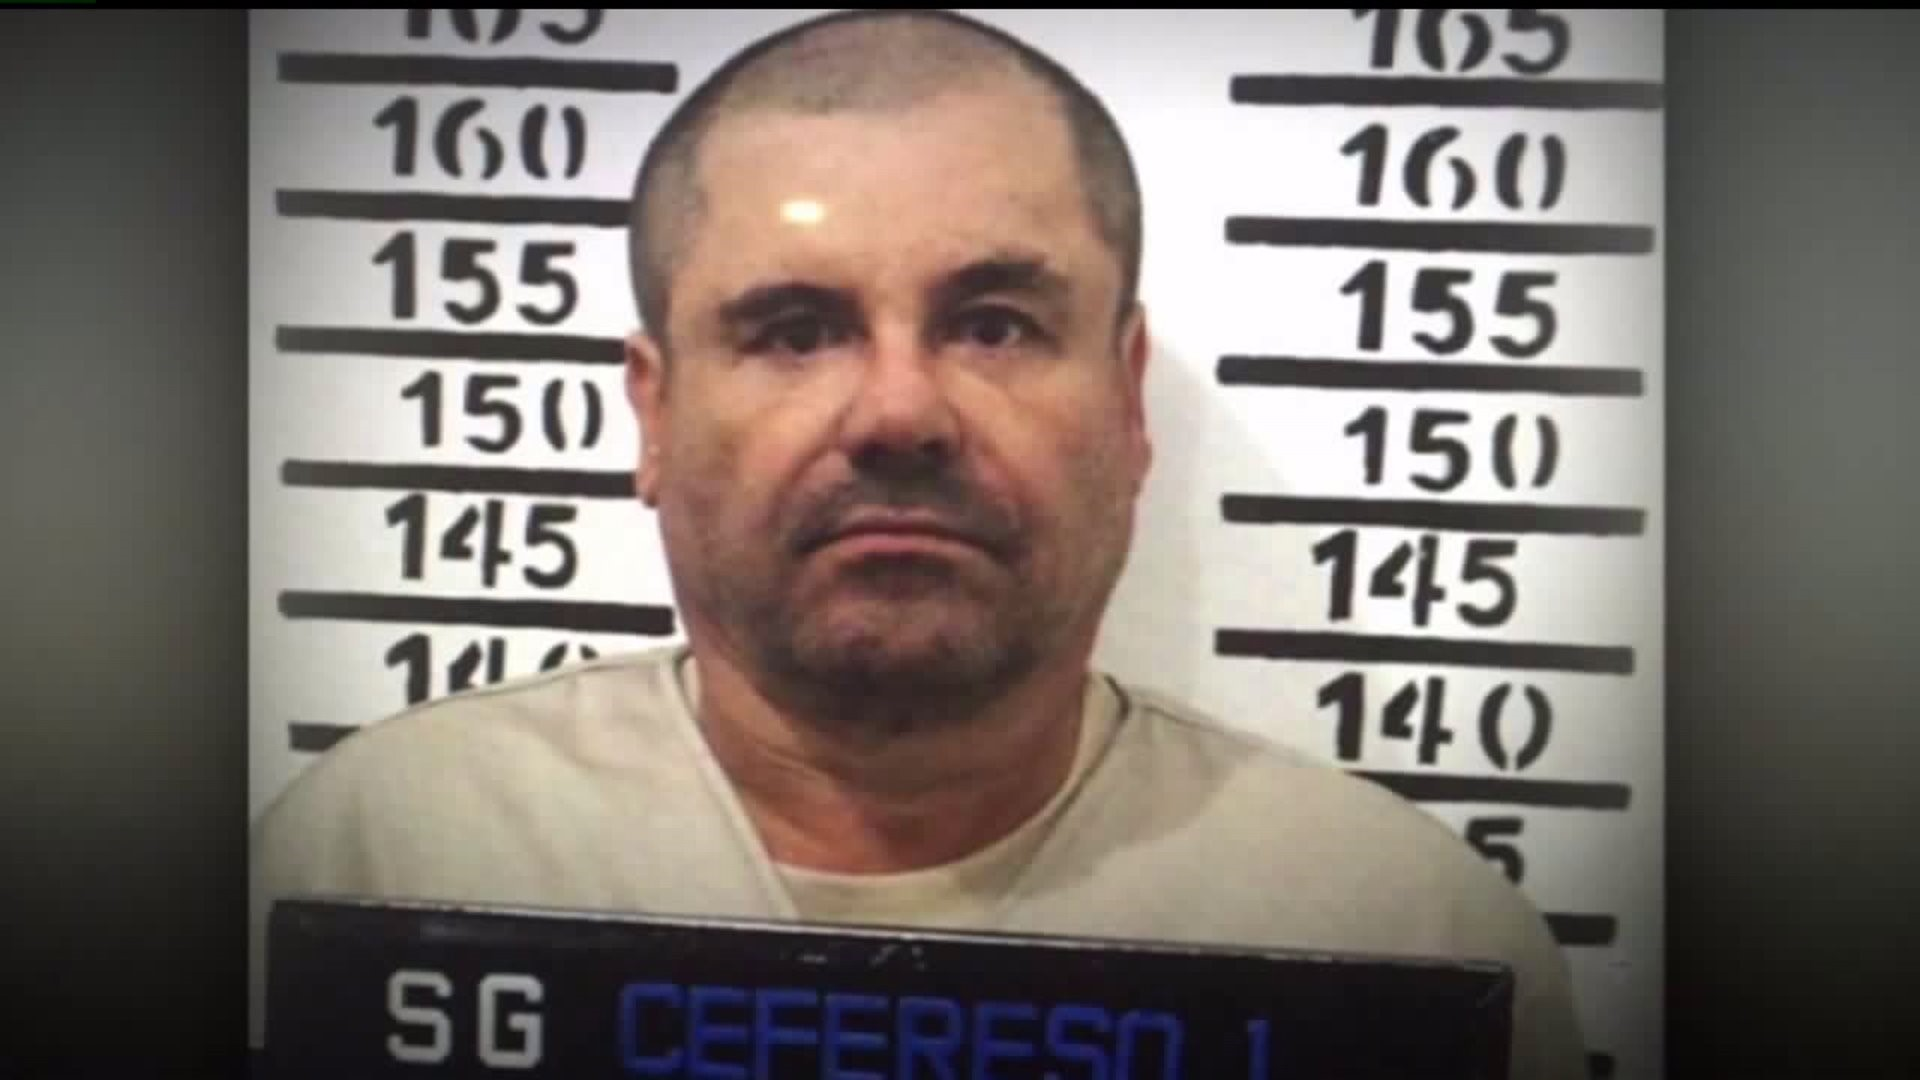 El Chapo' was sentenced to life in prison after calling his trial unjust  and slamming his prison conditions